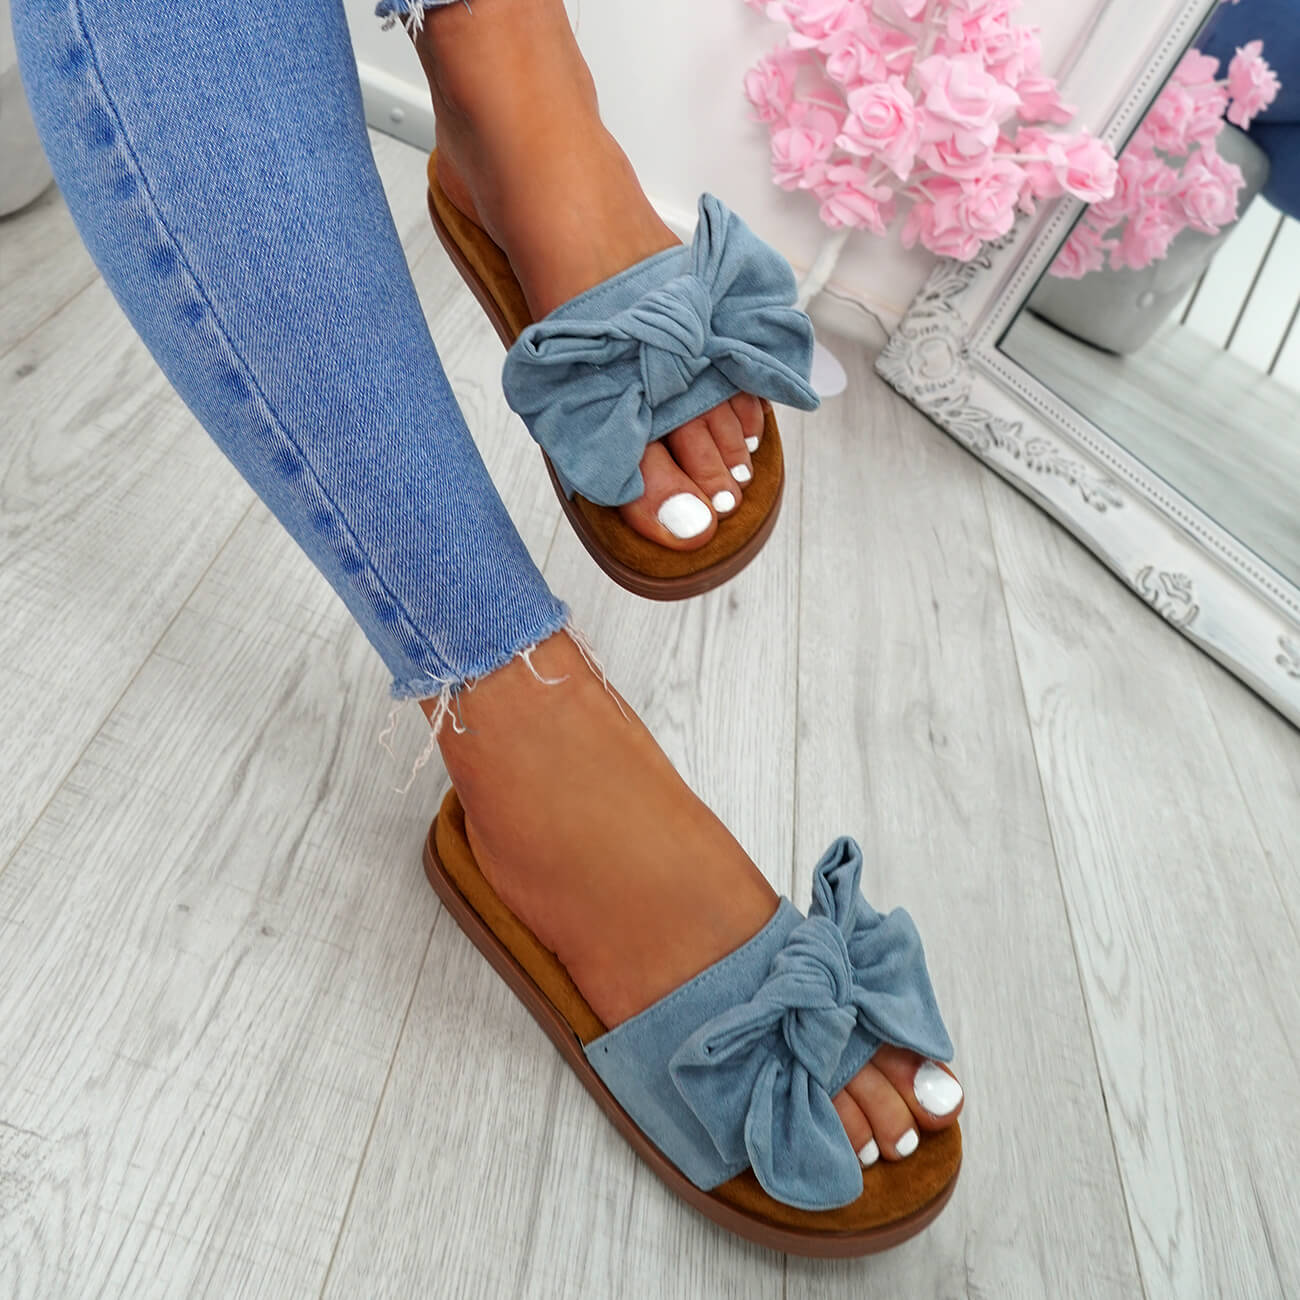 WOMENS-LADIES-FLAT-SANDALS-FRONT-BOW-COMFY-SUMMER-CASUAL-HOLIDAY-SHOES-SIZE-UK thumbnail 17